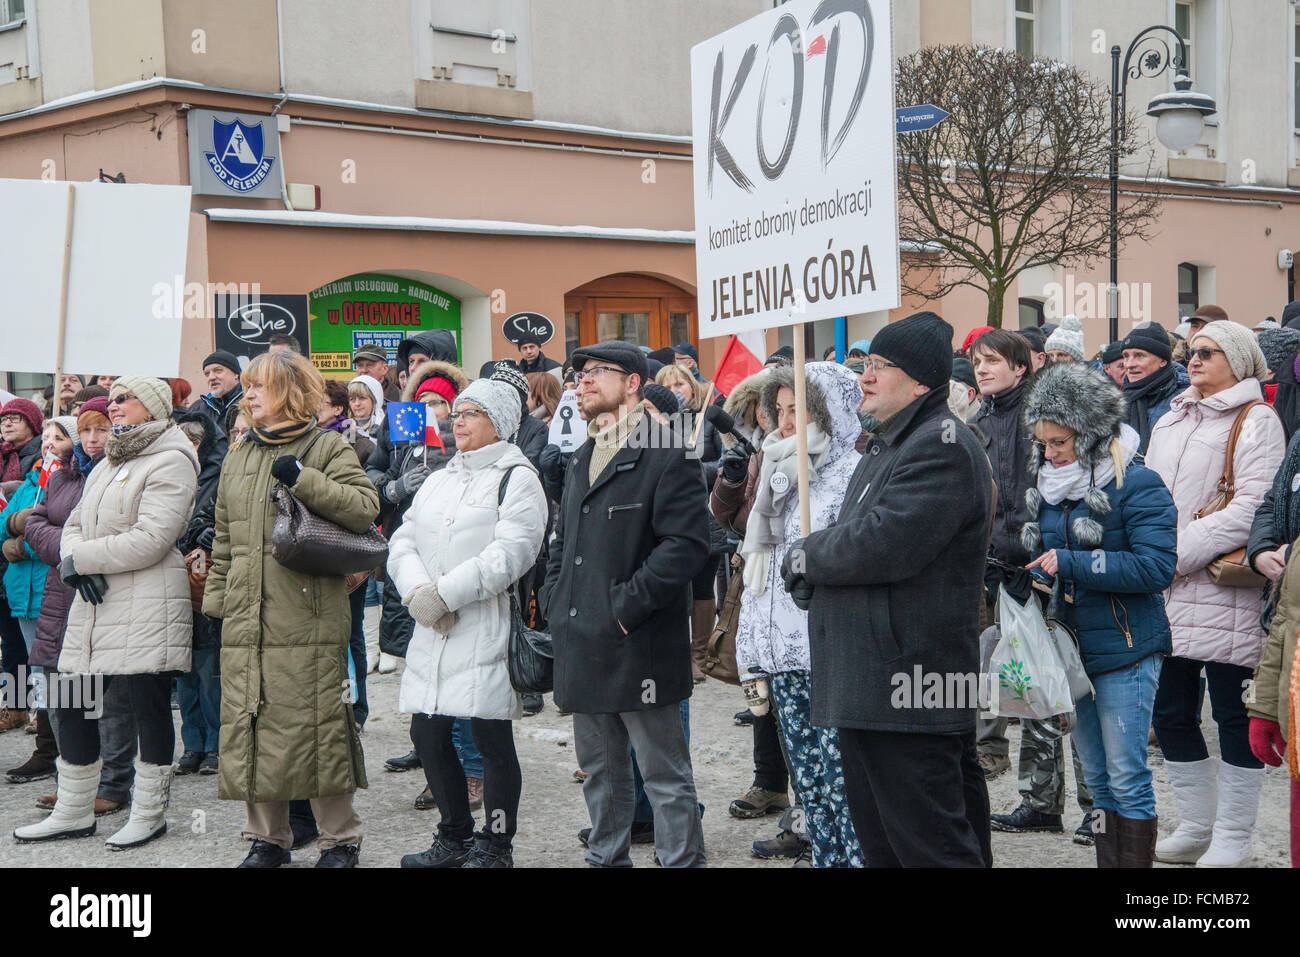 Jelenia Gora, Poland. 23th Jan, 2016. Supporters of Committee to Defend Democracy, protest against 'surveillance - Stock Image